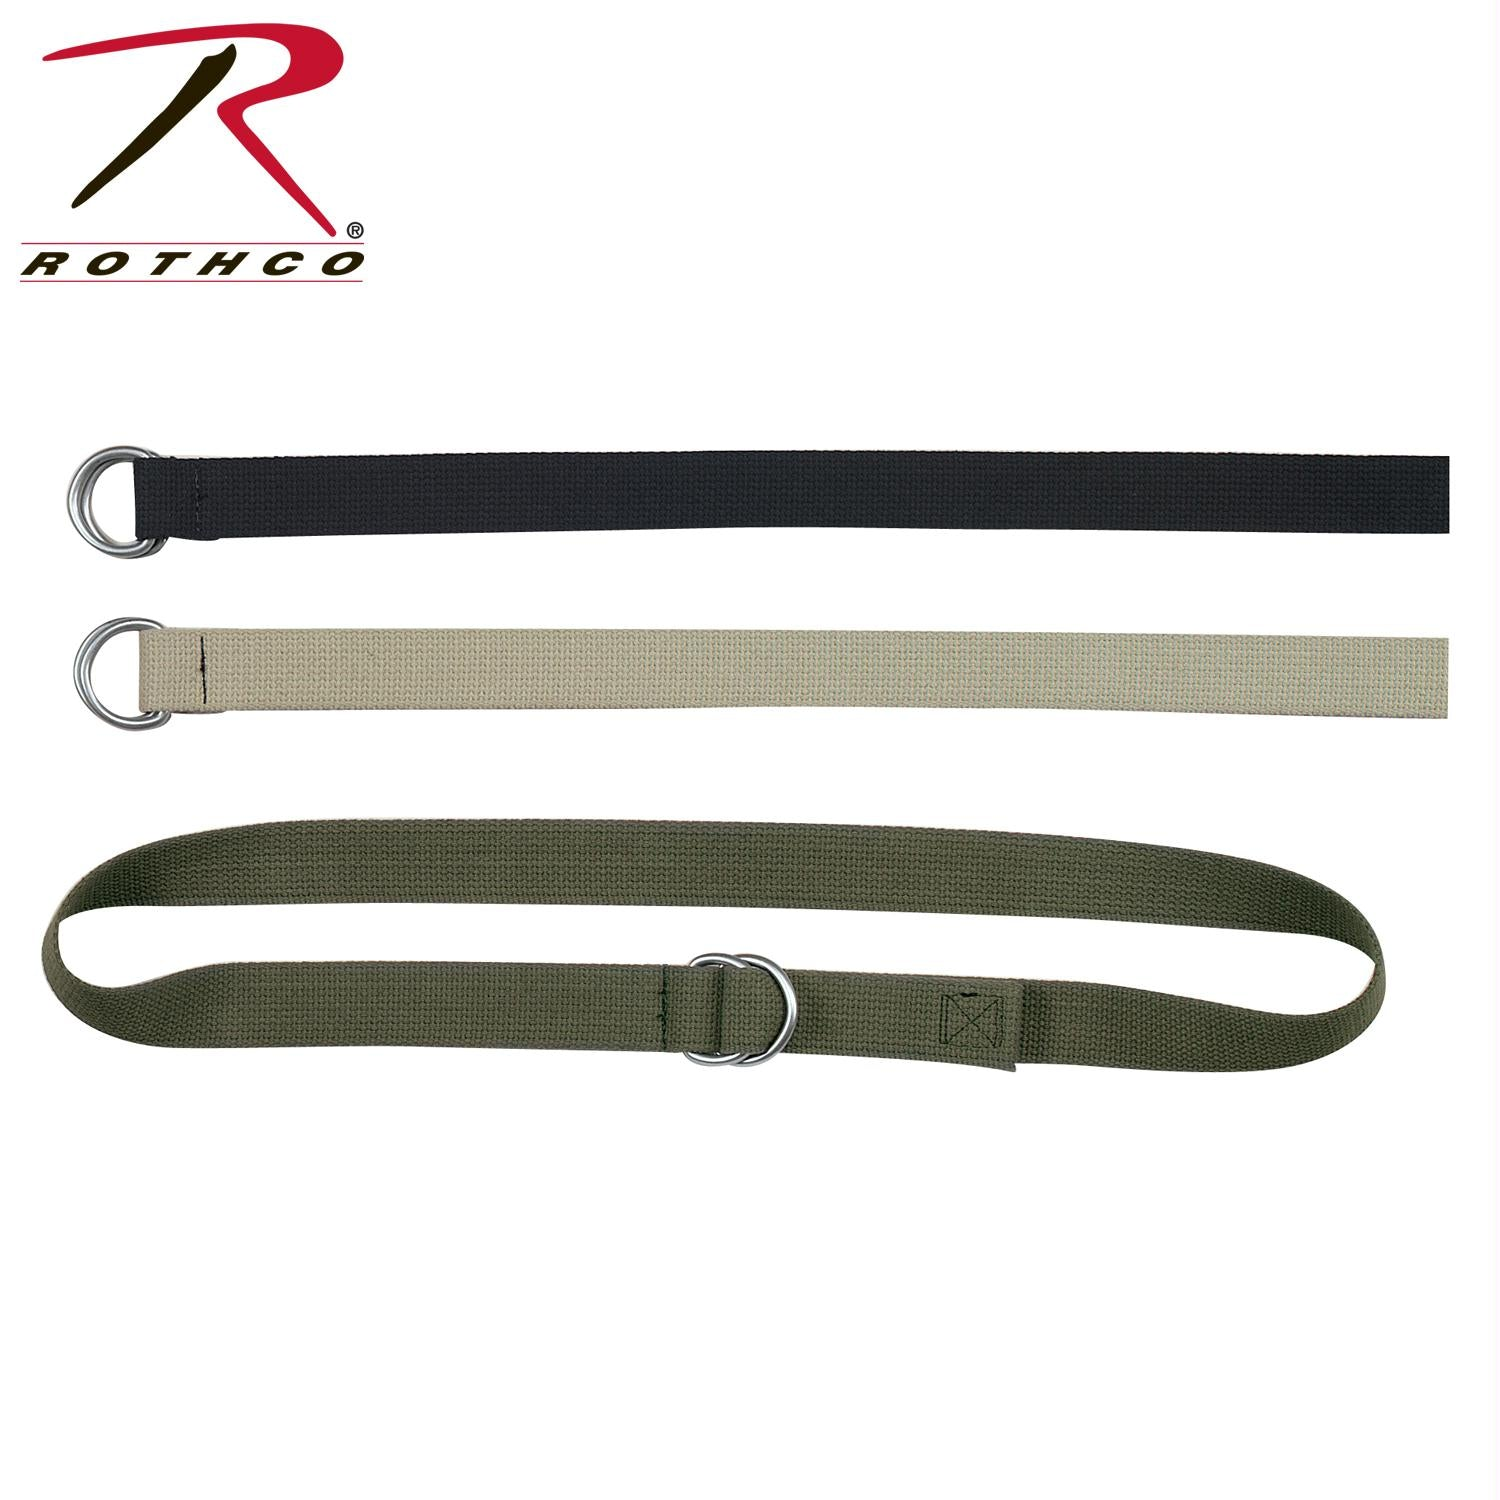 Rothco-Military D-Ring Expedition Belt - Olive Drab / M